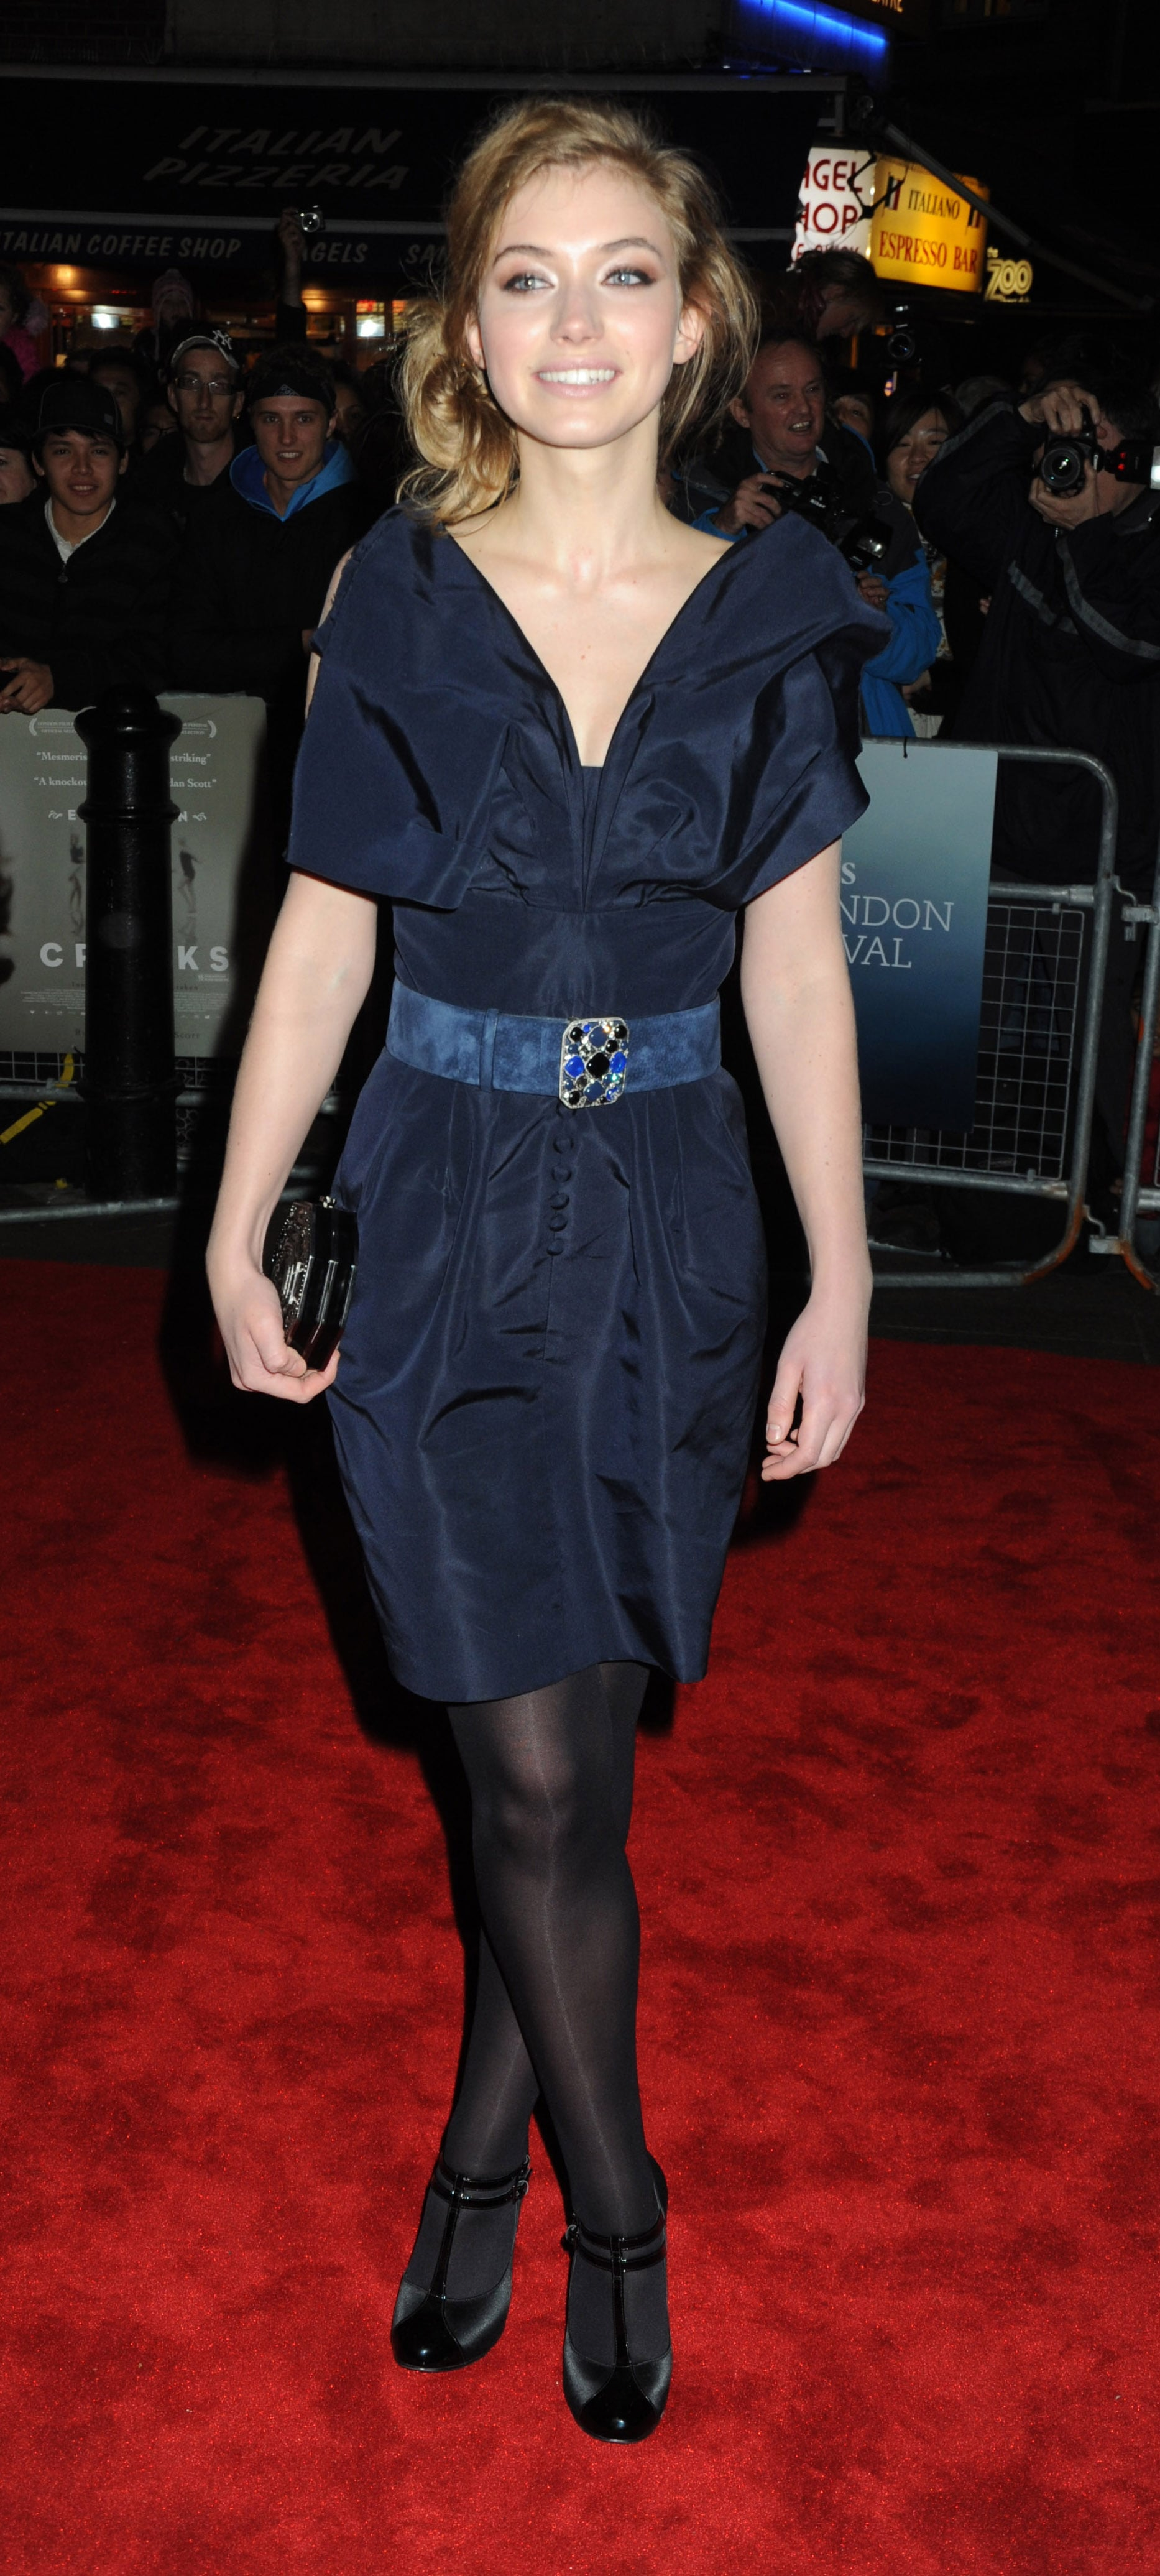 For an appearance at the BFI London Film Festival in 2009, a very young Imogen wore a simple navy dress and belt.